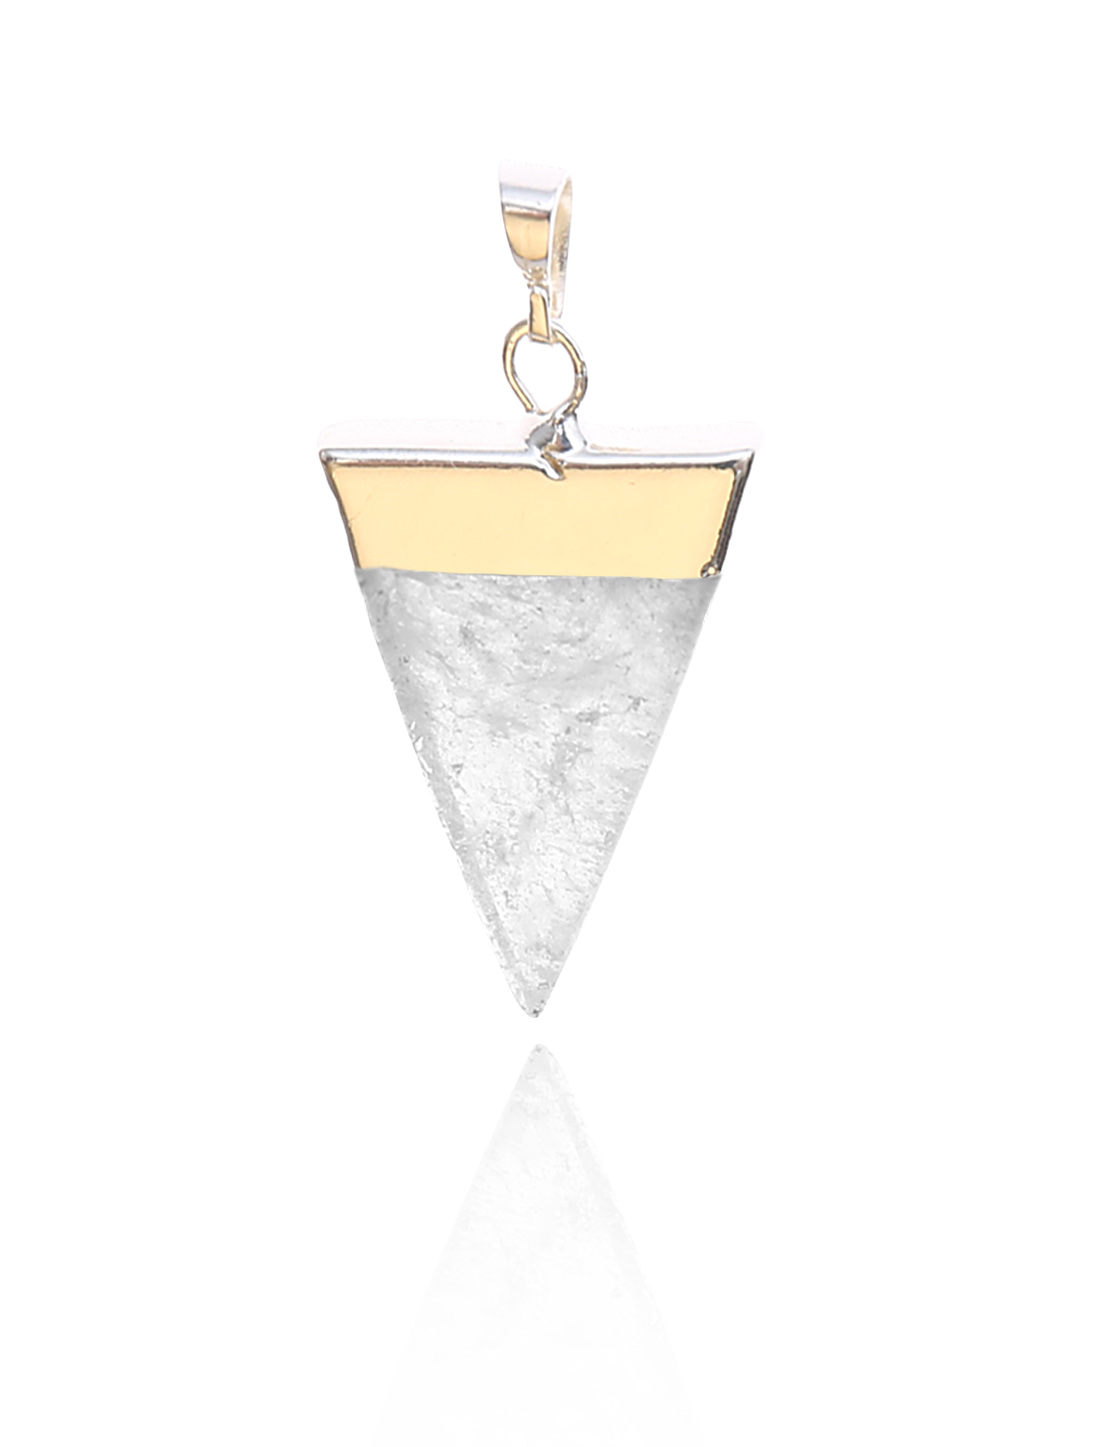 Rock Crystal Pyramid Healing Point Reiki Chakra Gemstone Gold Plated Pendant For Necklace